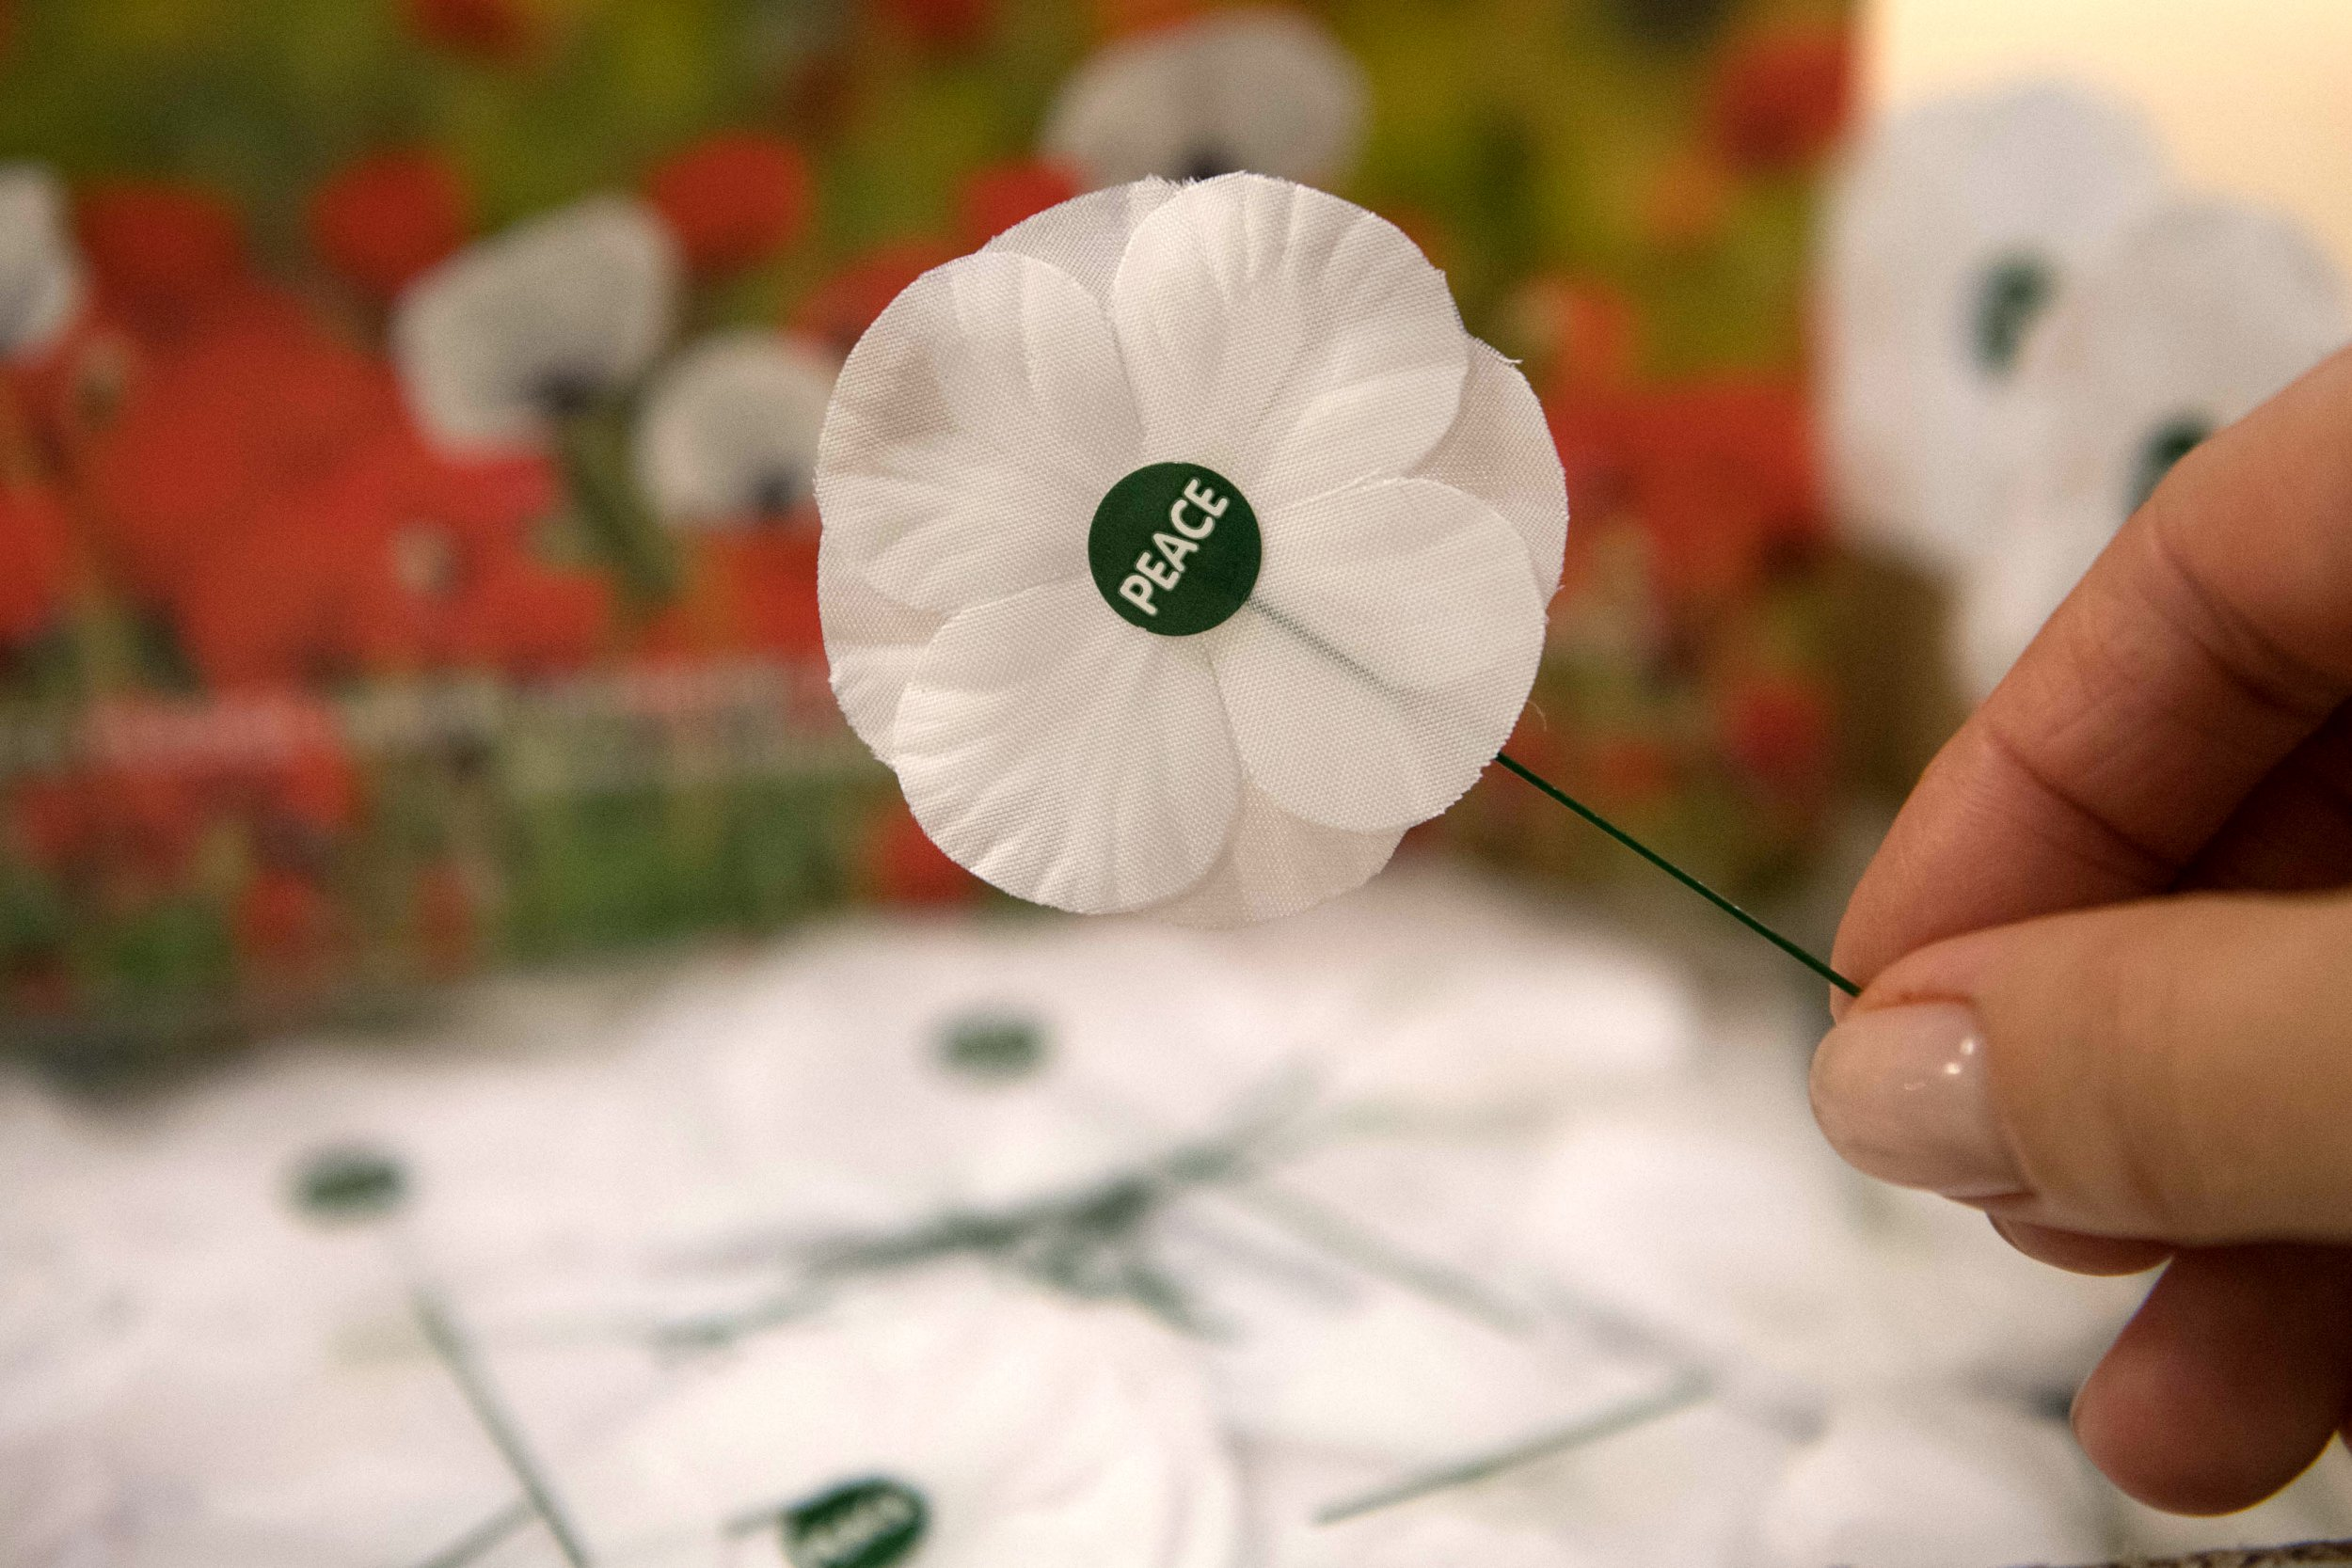 My white poppy doesn't mean I'm against remembrance, it means I am committed to peace